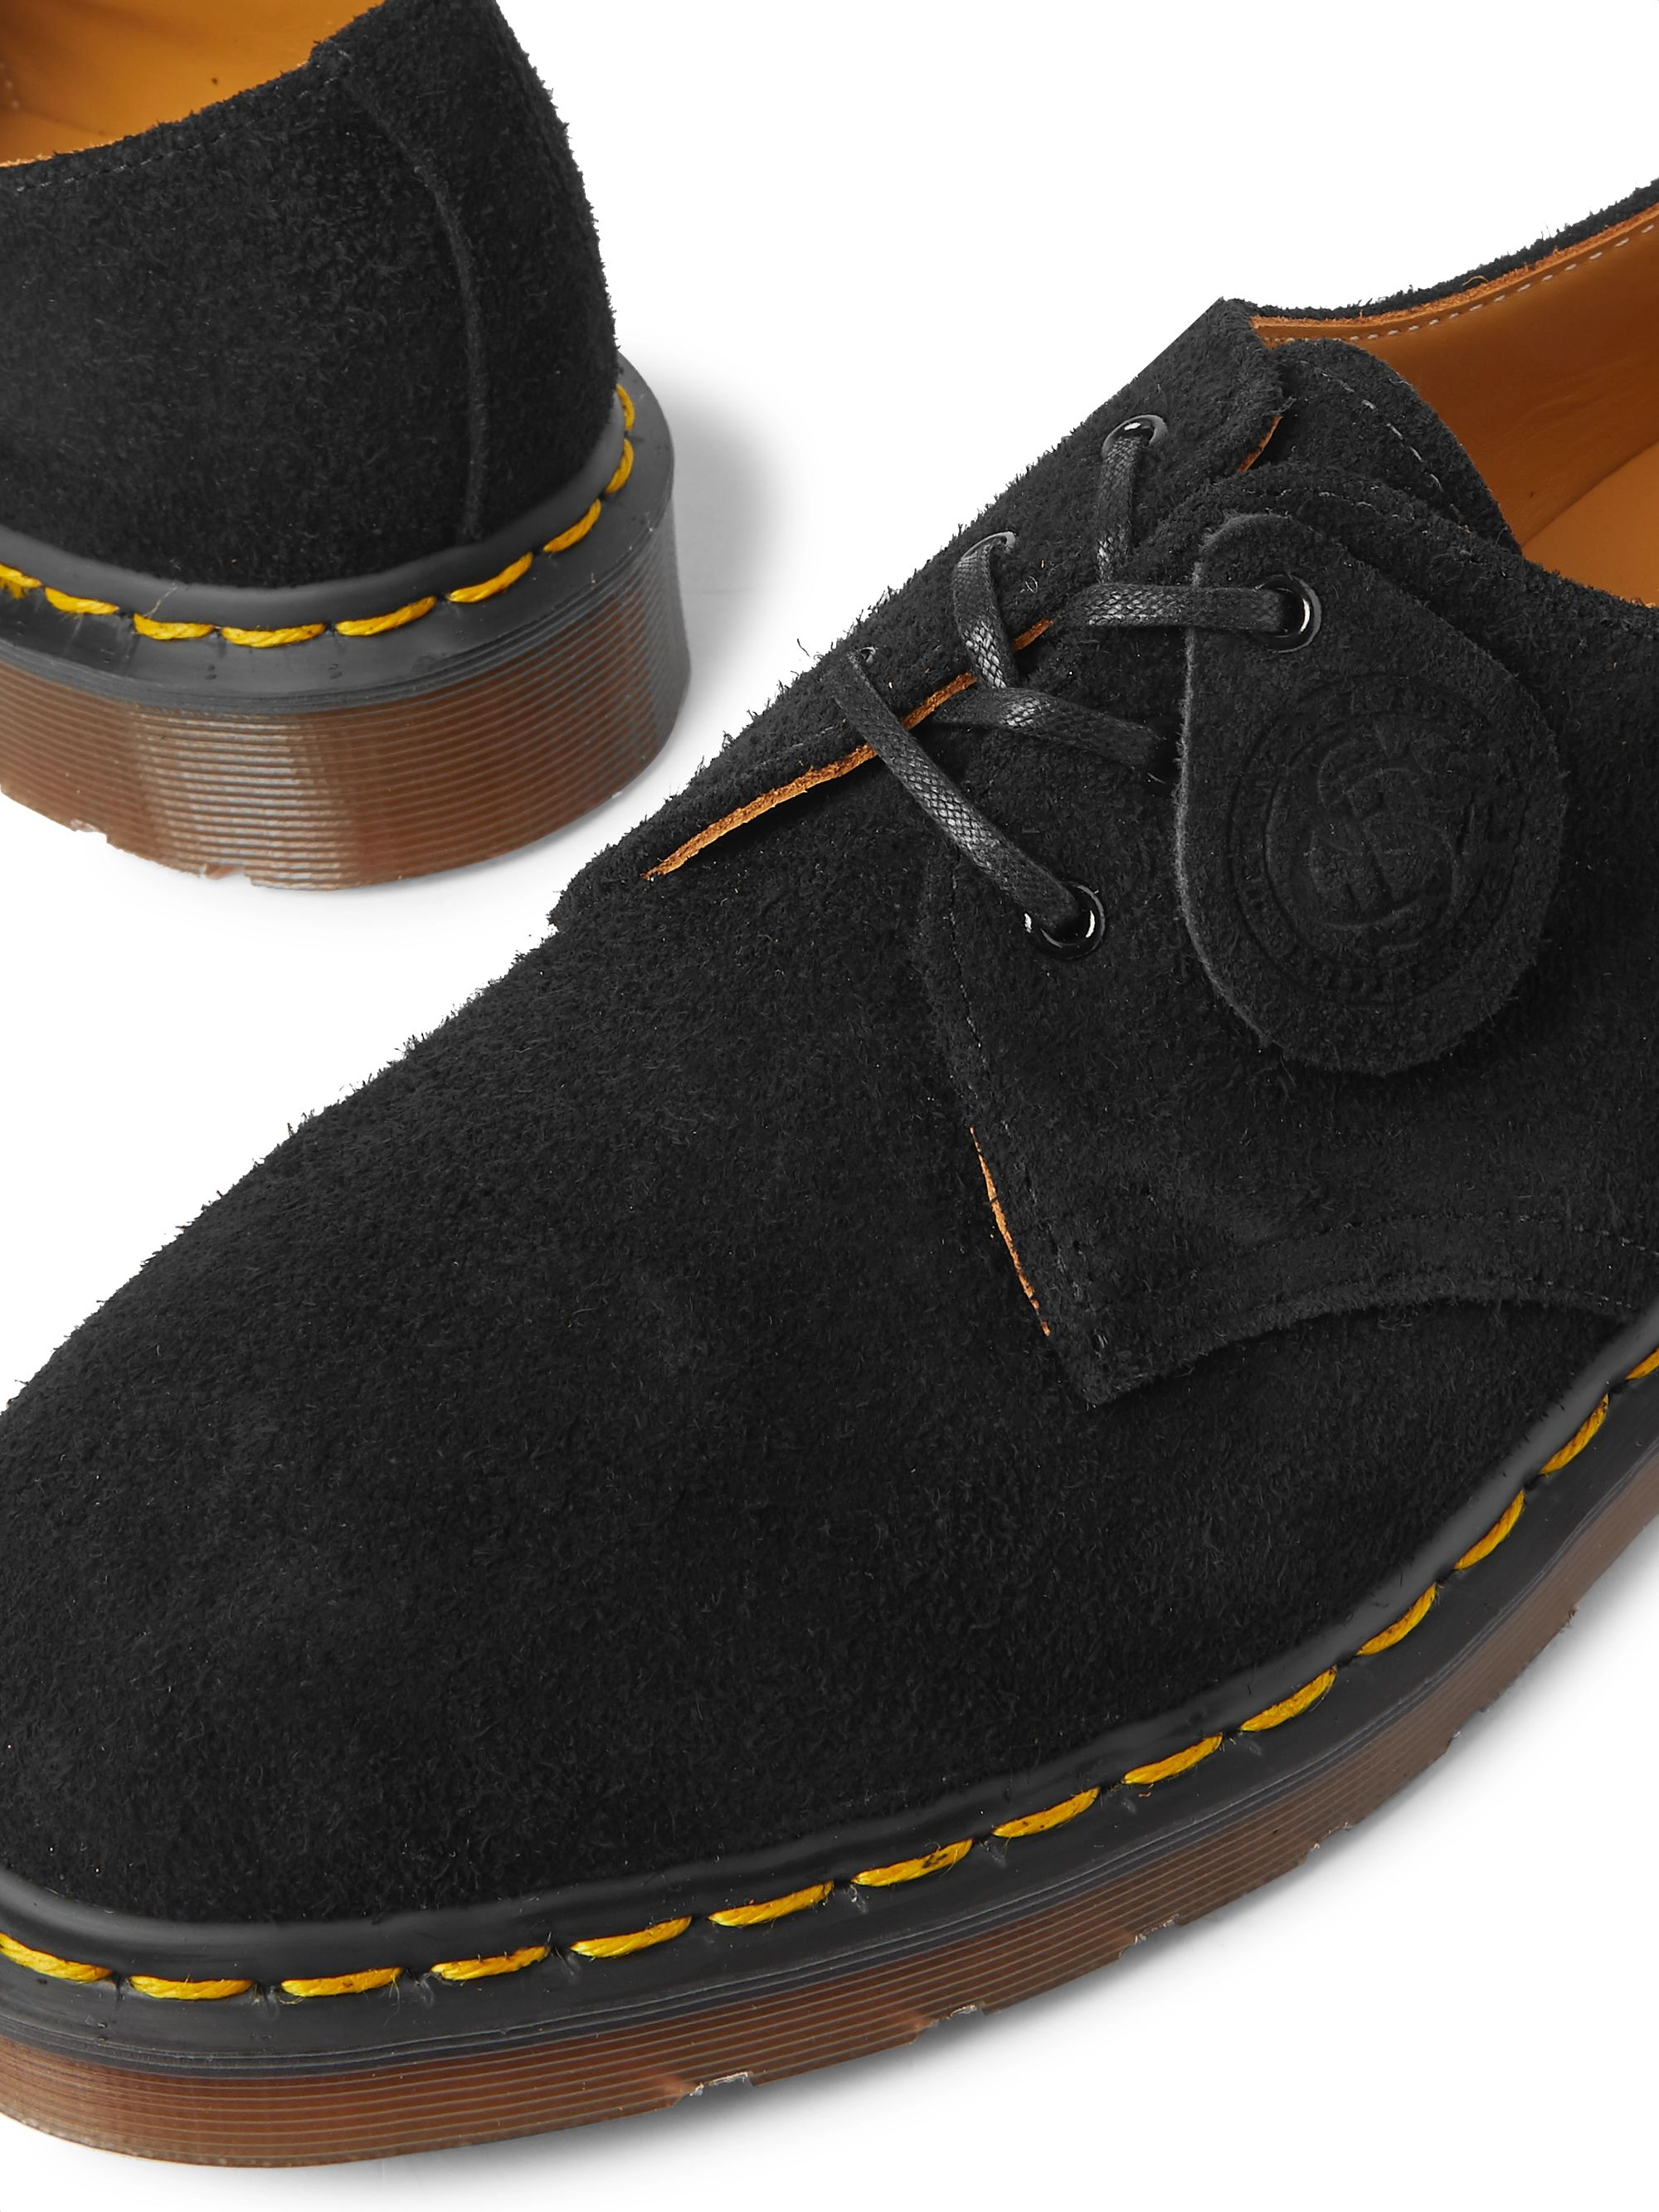 Dr. Martens 1461 Brushed-Suede Derby Shoes